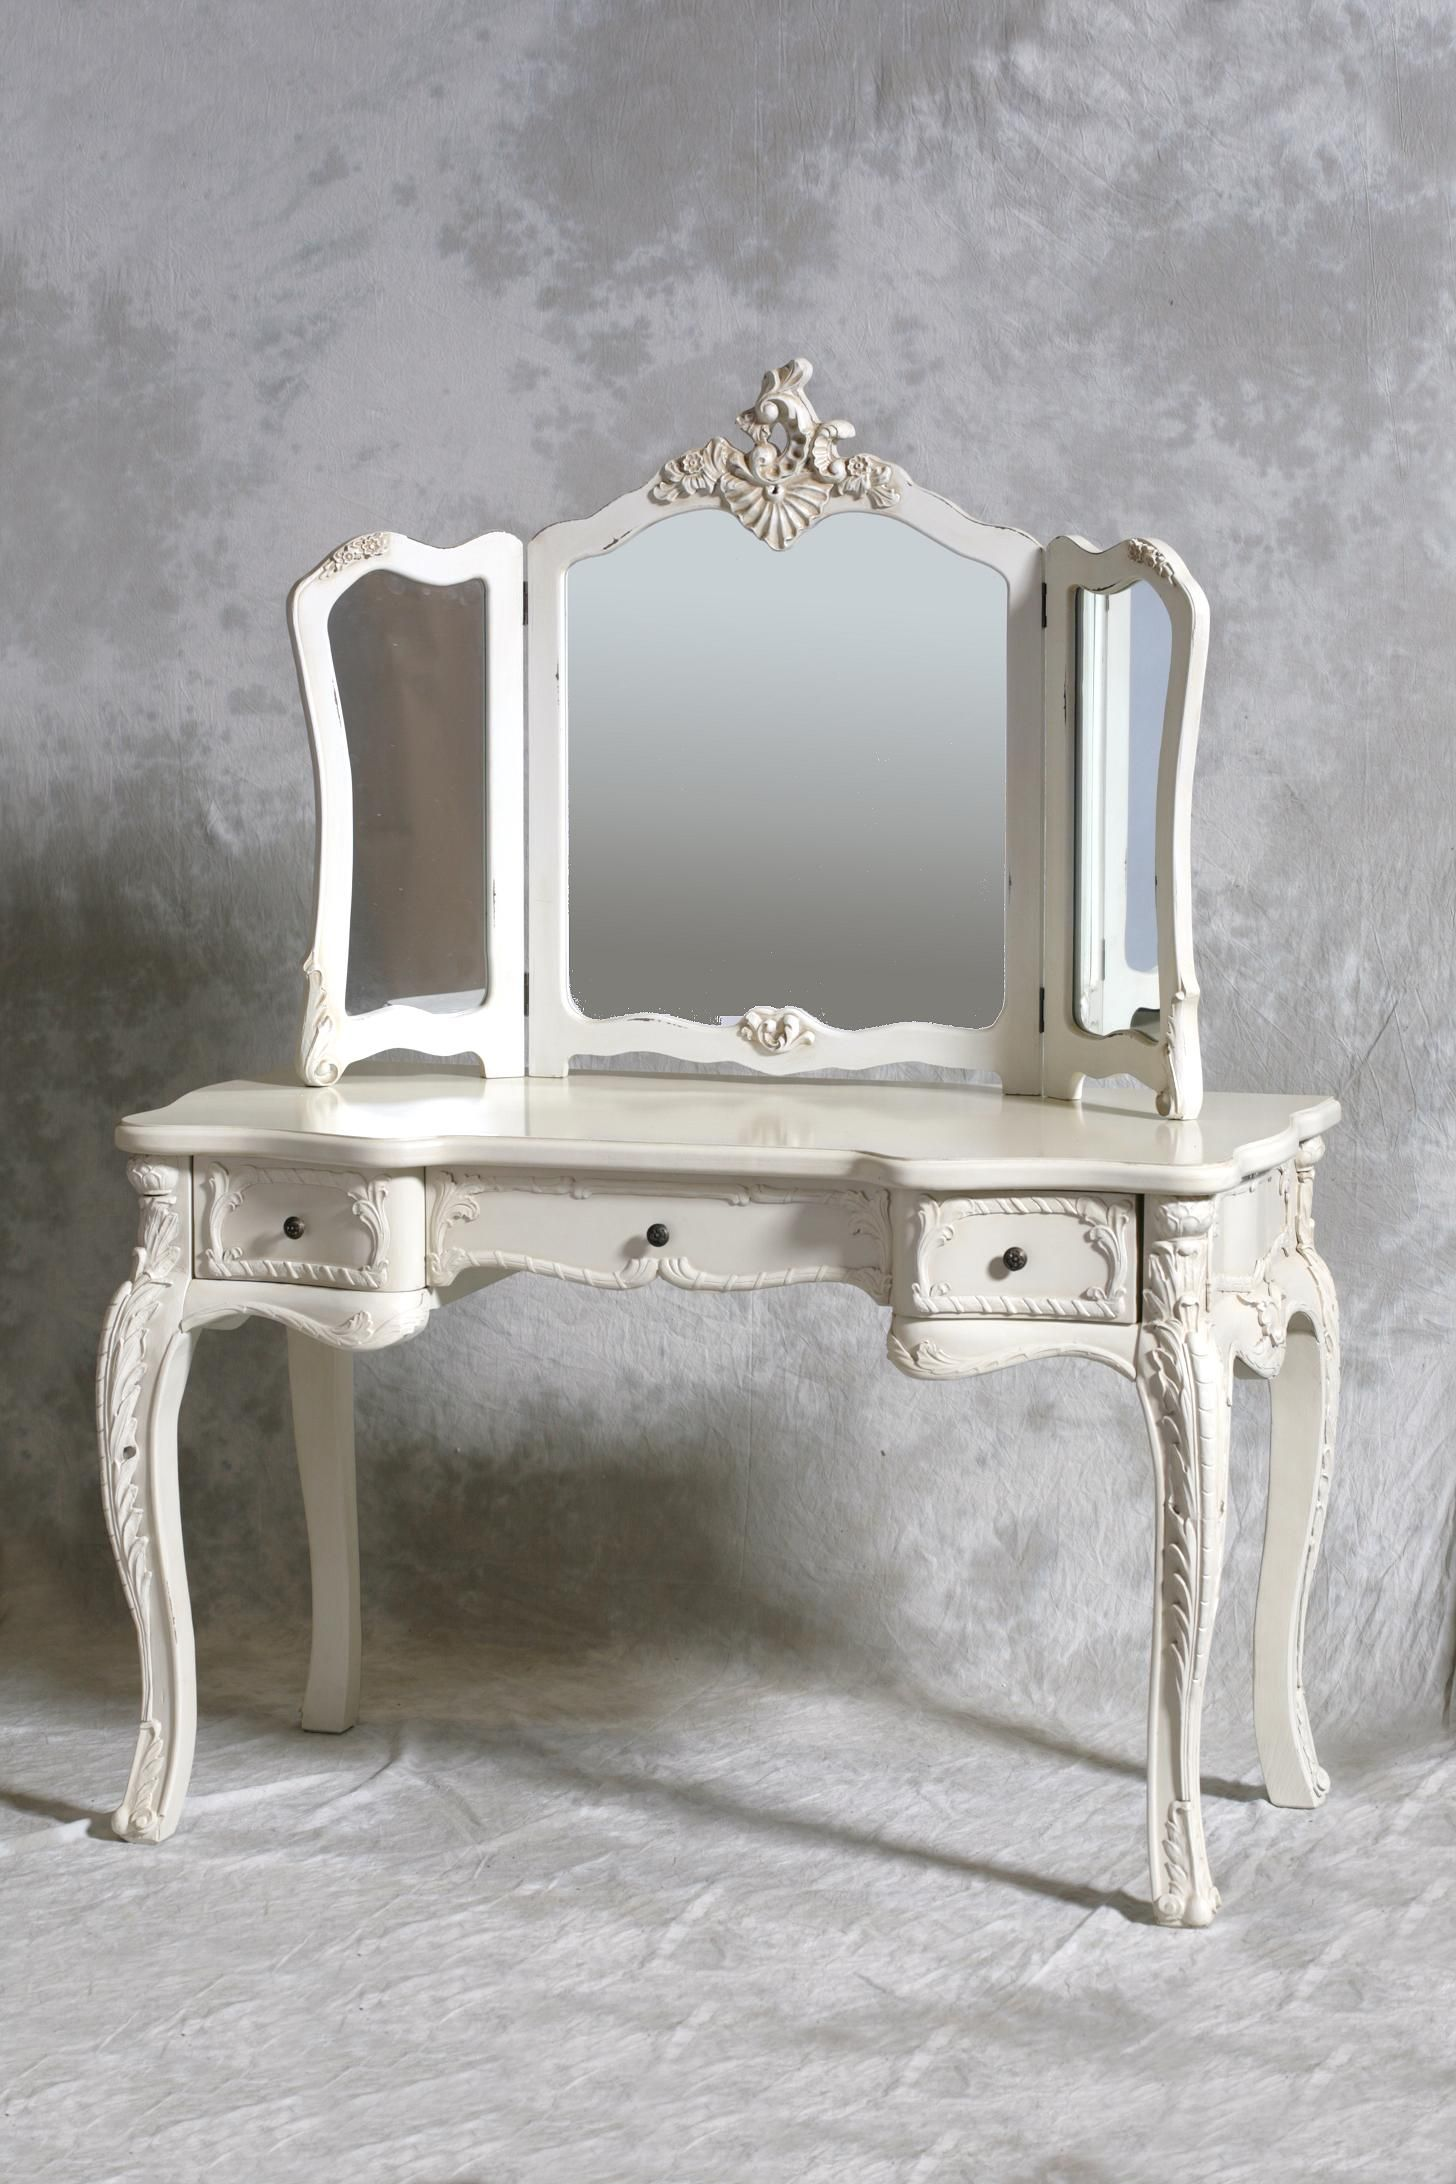 chateau french antique style cream dressing table 3 fold mirror - Vintage Style Bedroom Vanity. Bedroom Contemporary Bedroom Vanity